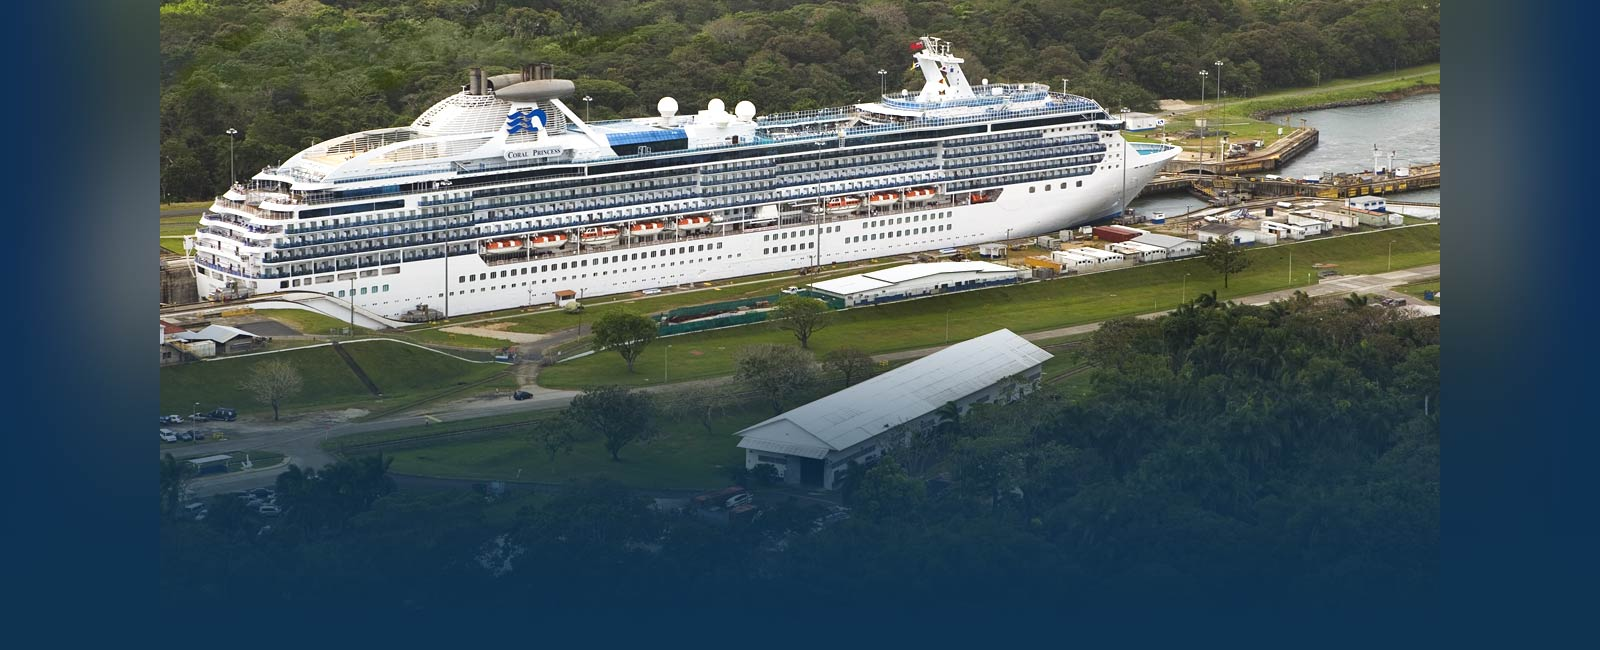 Coral Princess in the Panama Canal